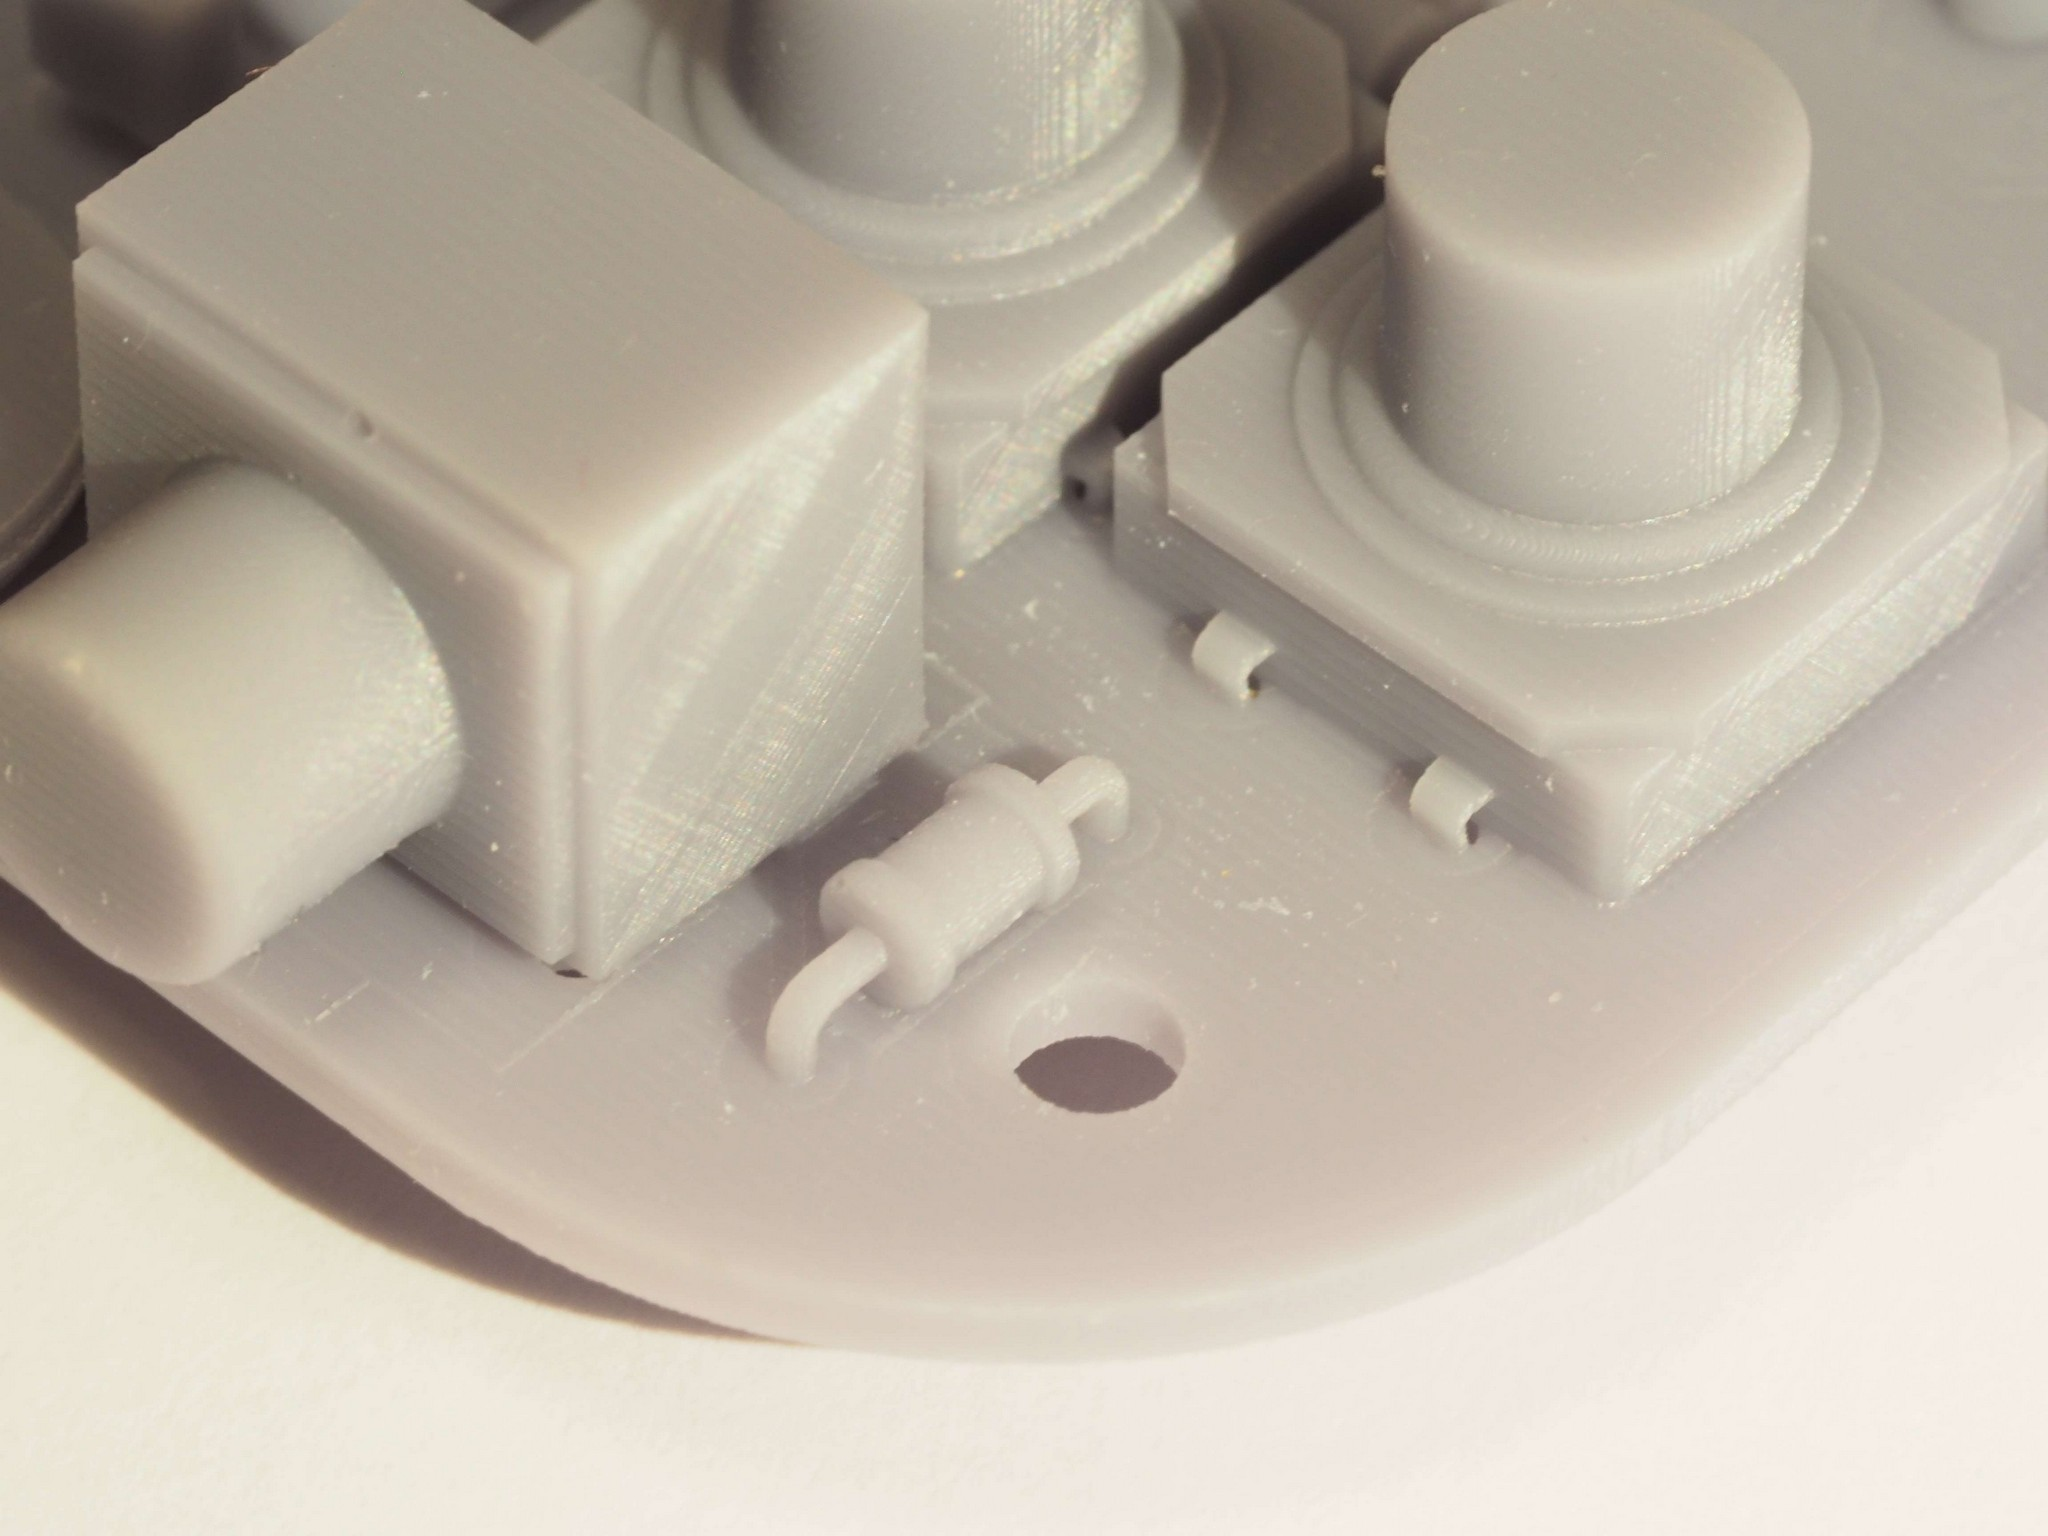 A mounting hole - the model can be used for testing an enclosure. SLA 3D Print of Gamebuino STEP Model